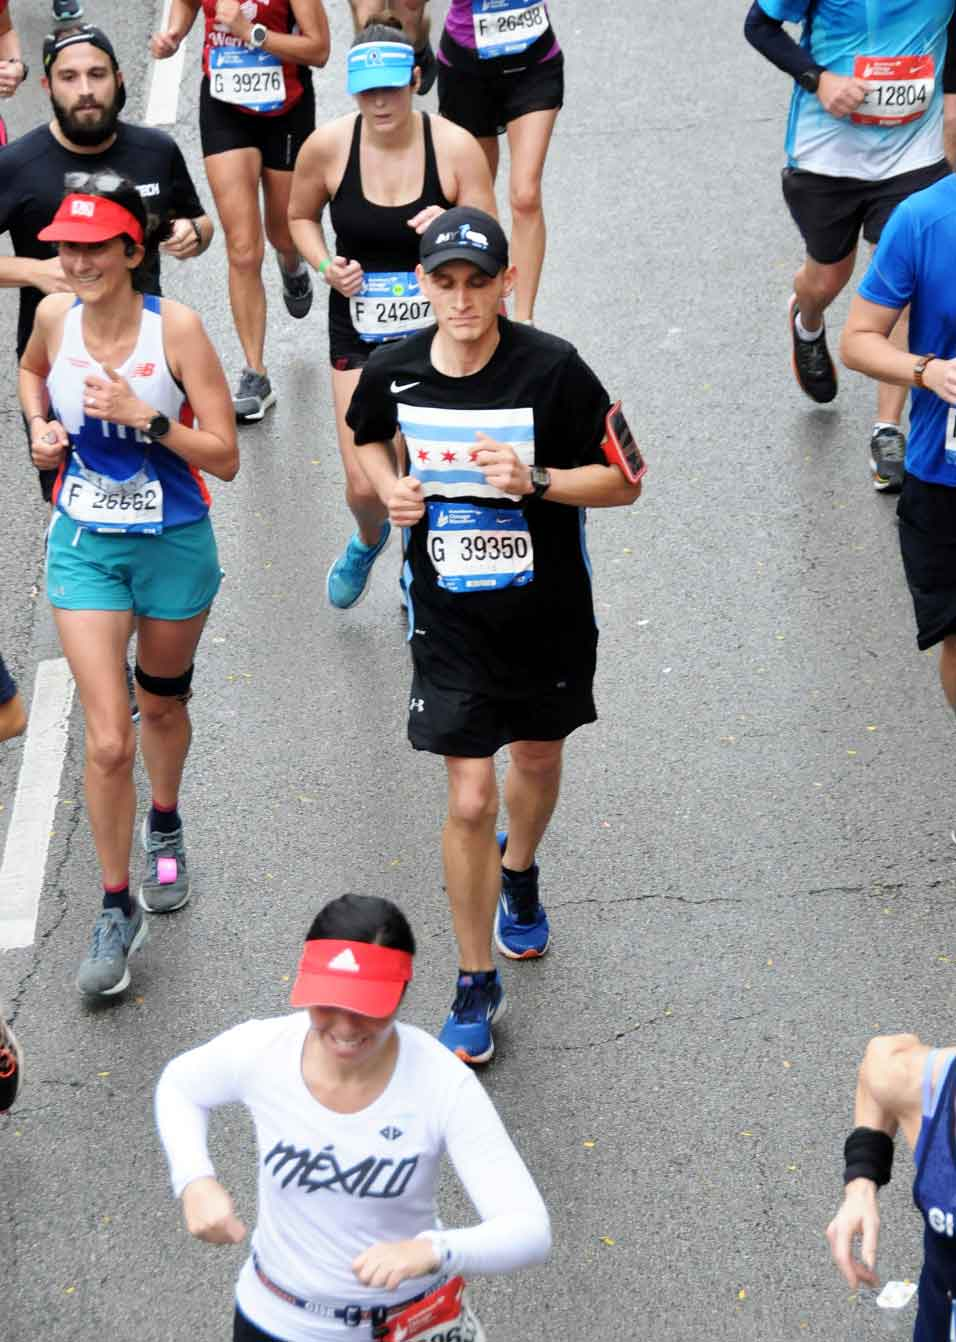 Running the marathon - how FFC helped member John finish the Chicago Marathon